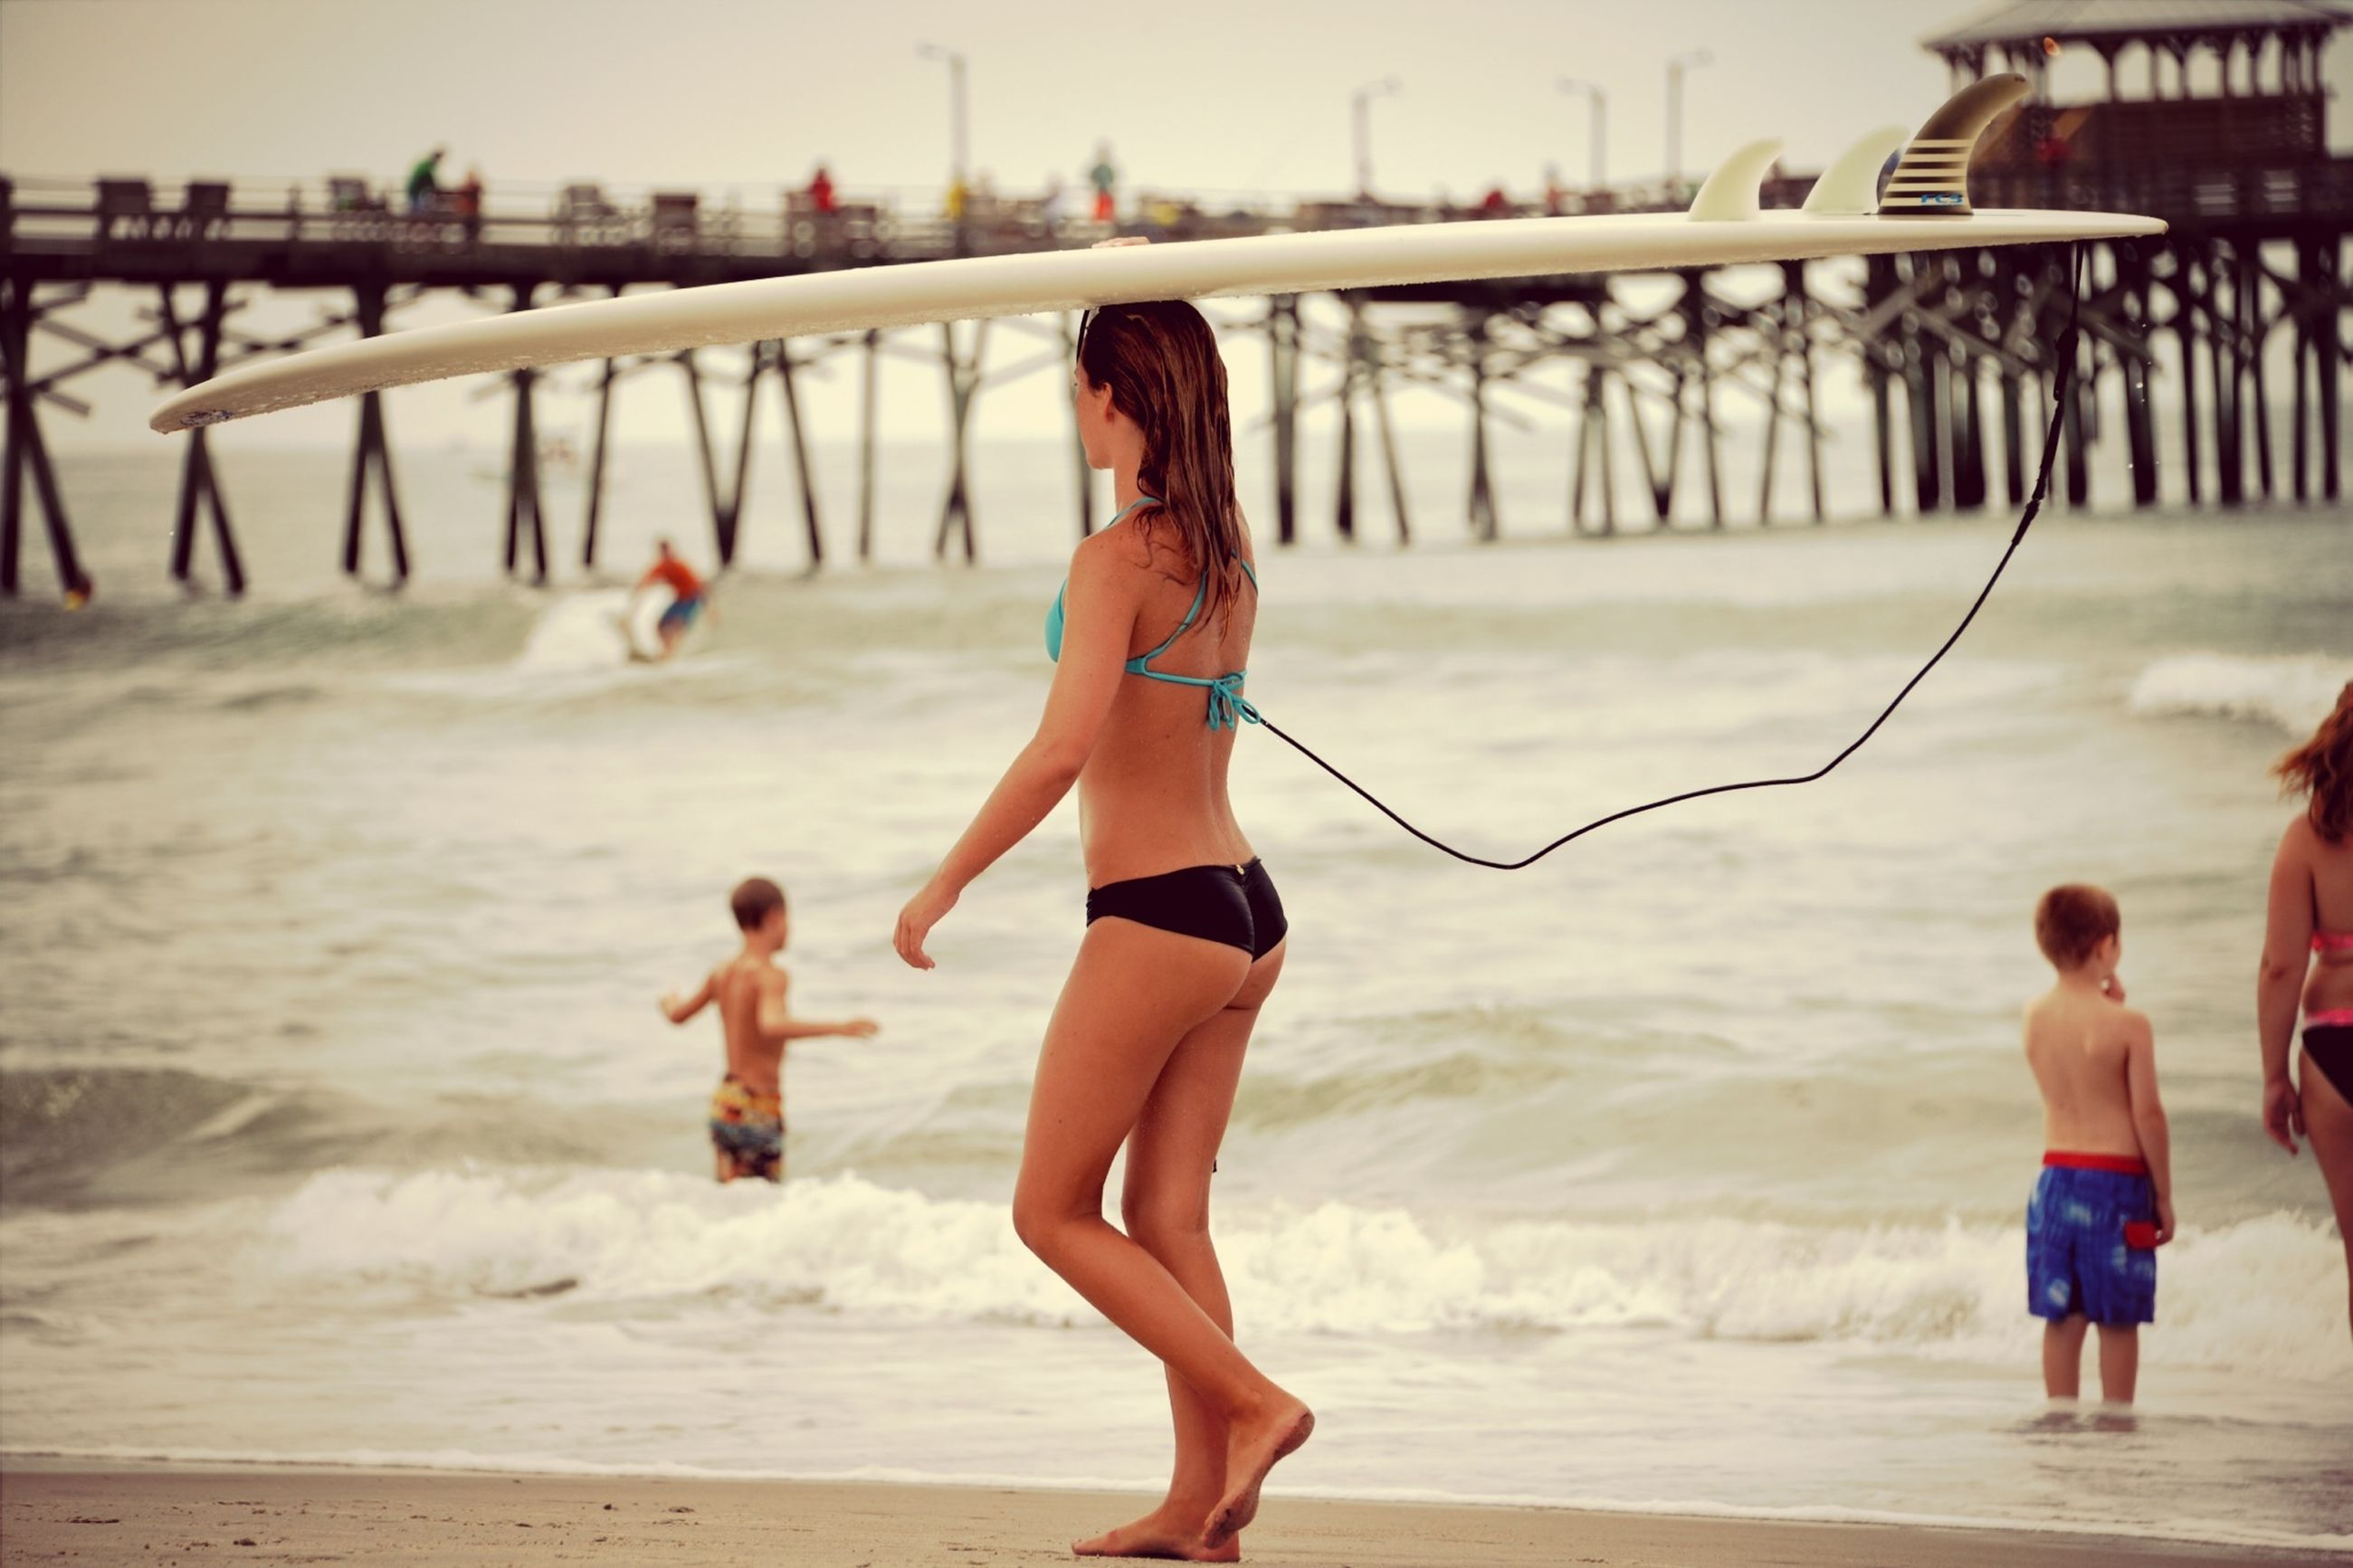 water, childhood, beach, lifestyles, sea, full length, leisure activity, enjoyment, fun, elementary age, shore, girls, boys, playful, playing, focus on foreground, happiness, sand, vacations